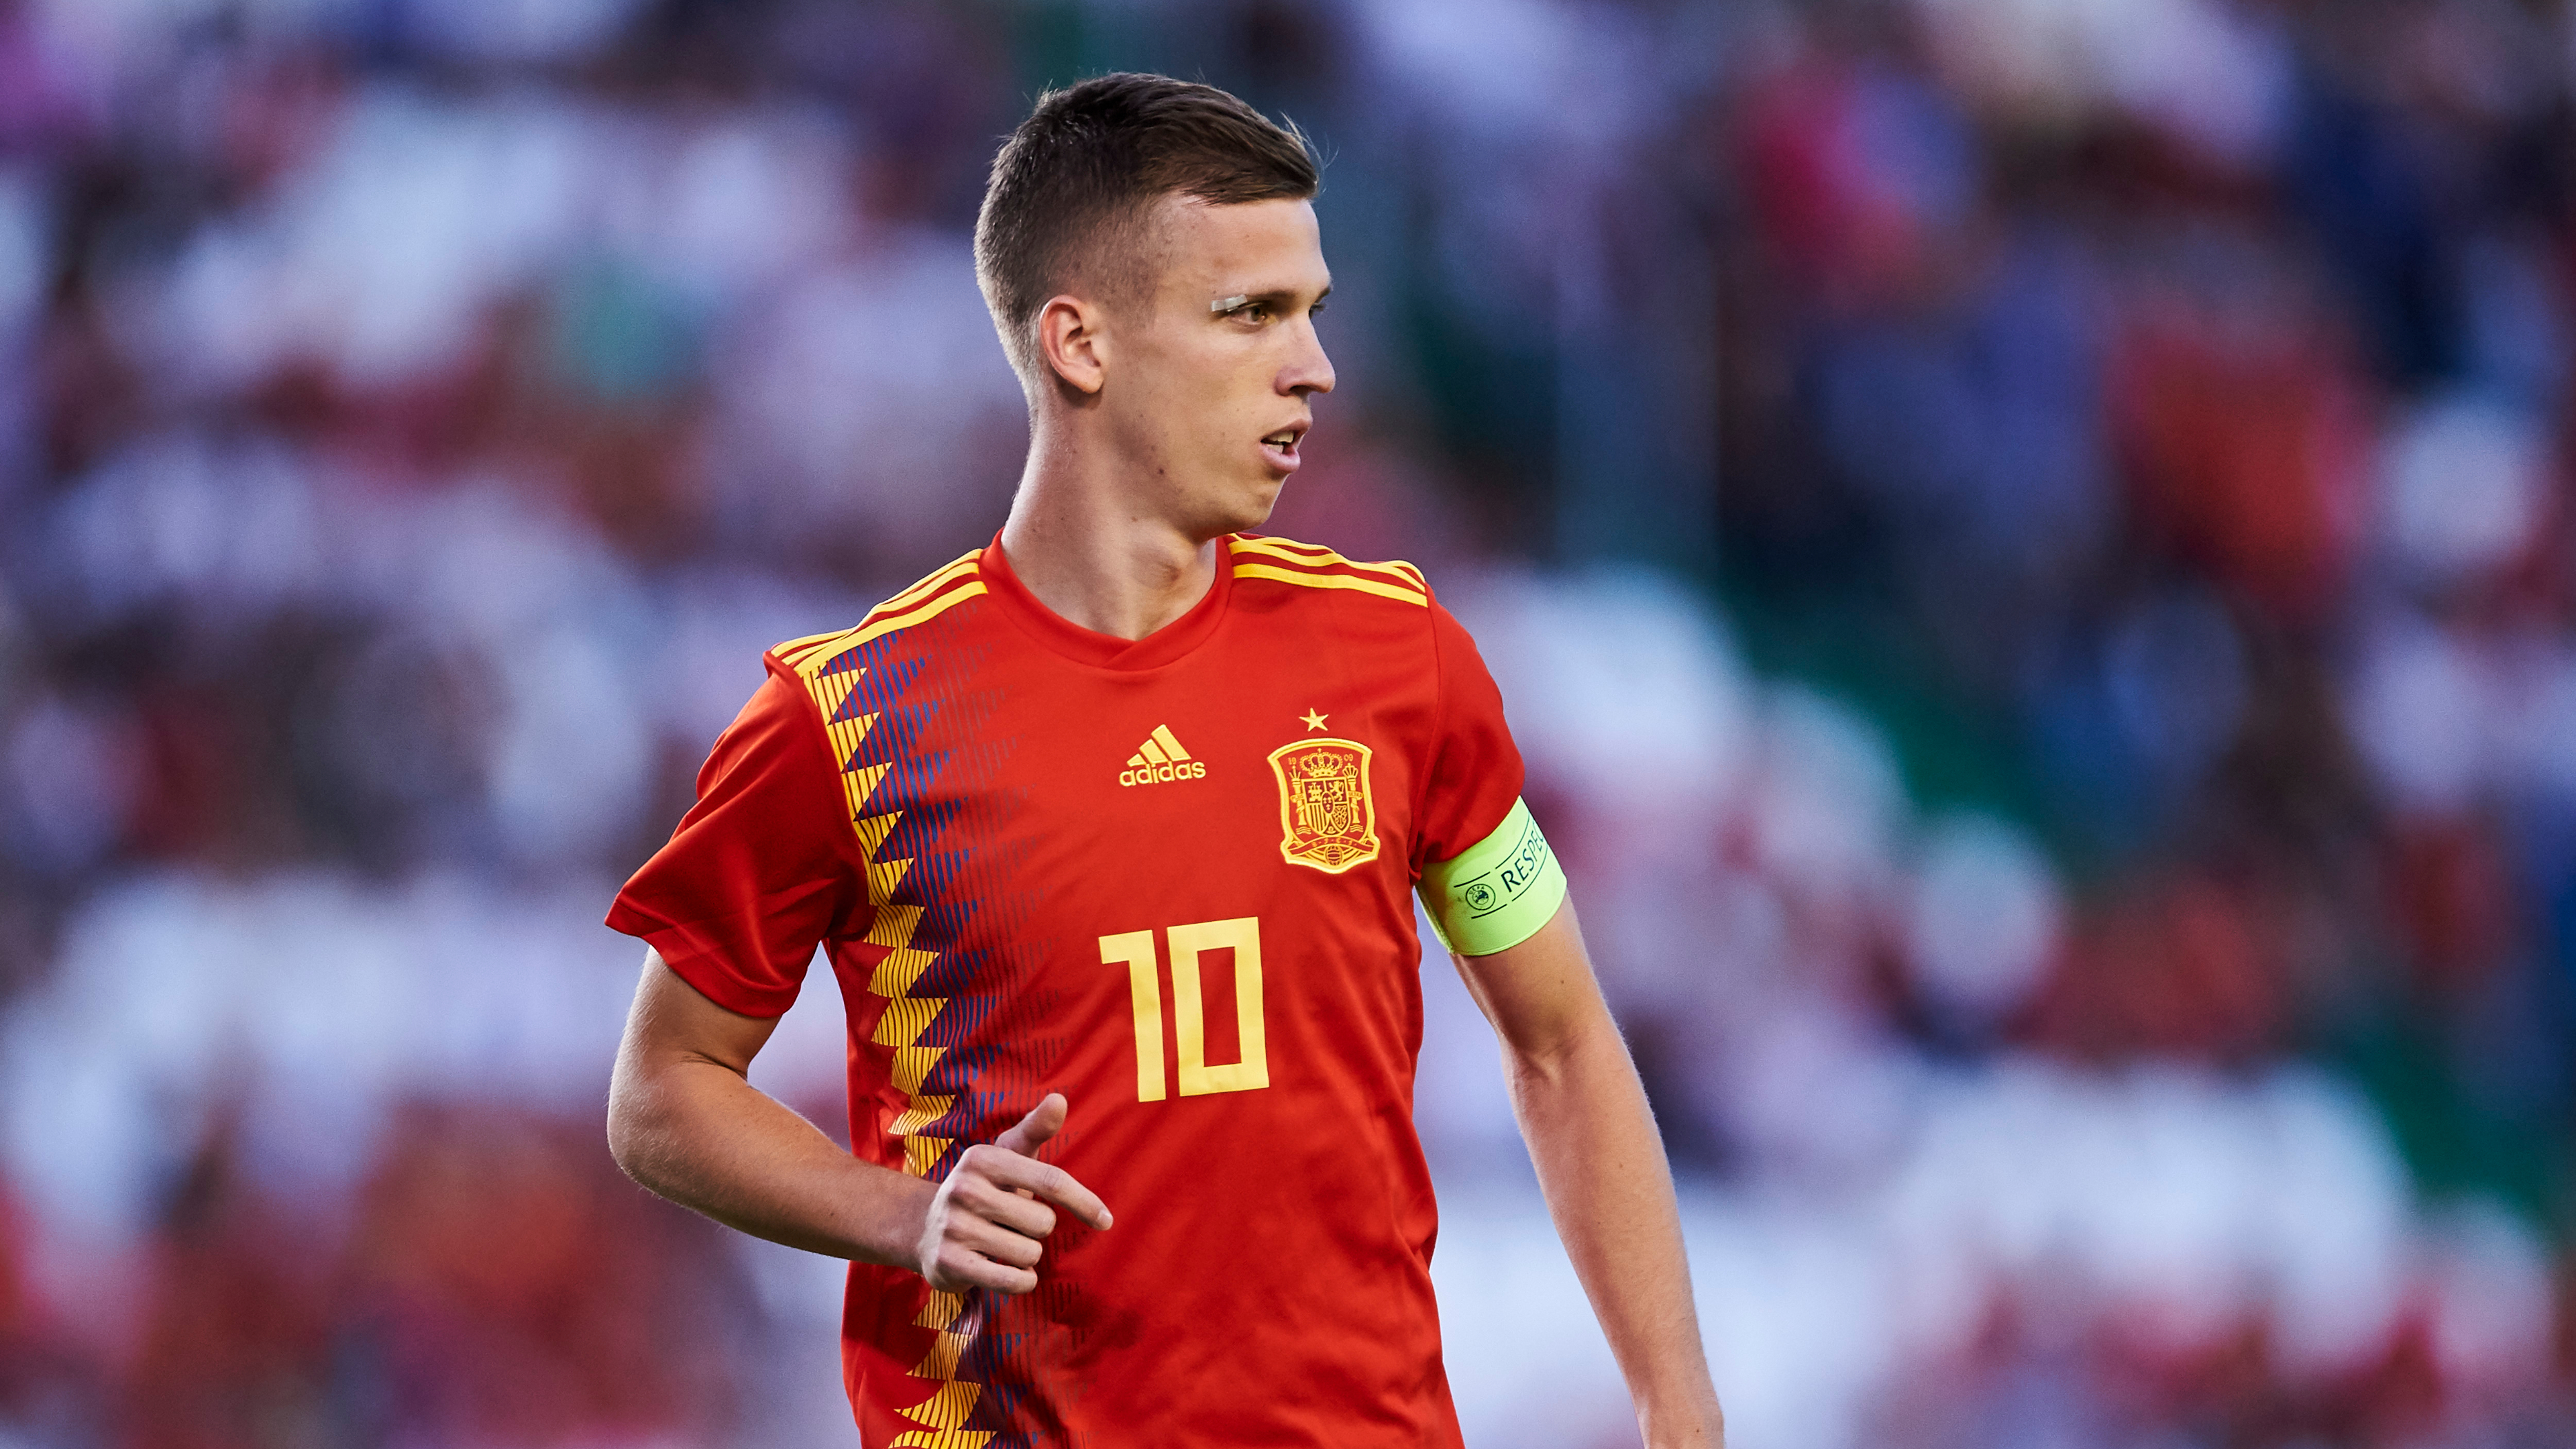 'He's ready!' - Man Utd and Barcelona-linked Olmo tipped to join European elite by Dinamo boss